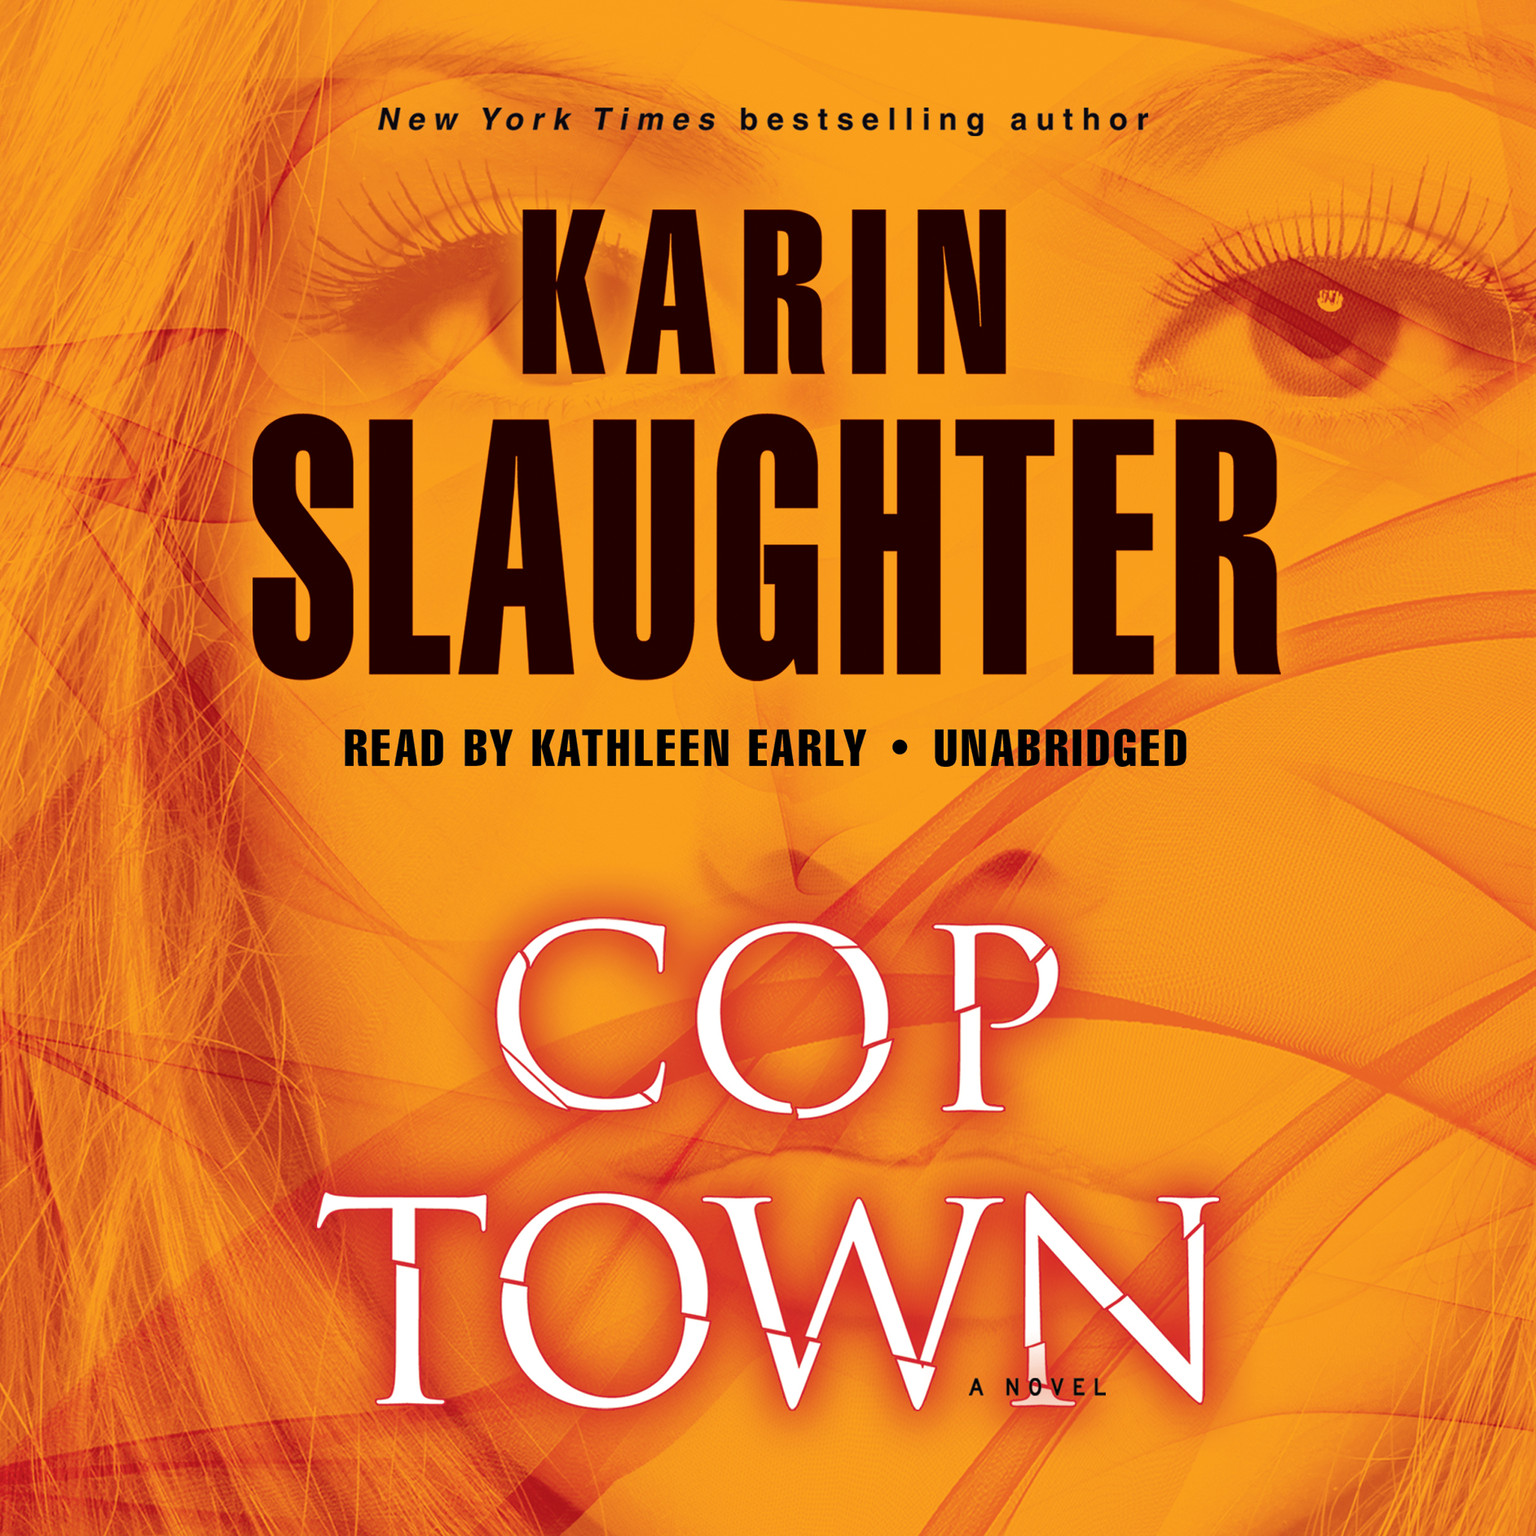 Printable Cop Town: A Novel Audiobook Cover Art